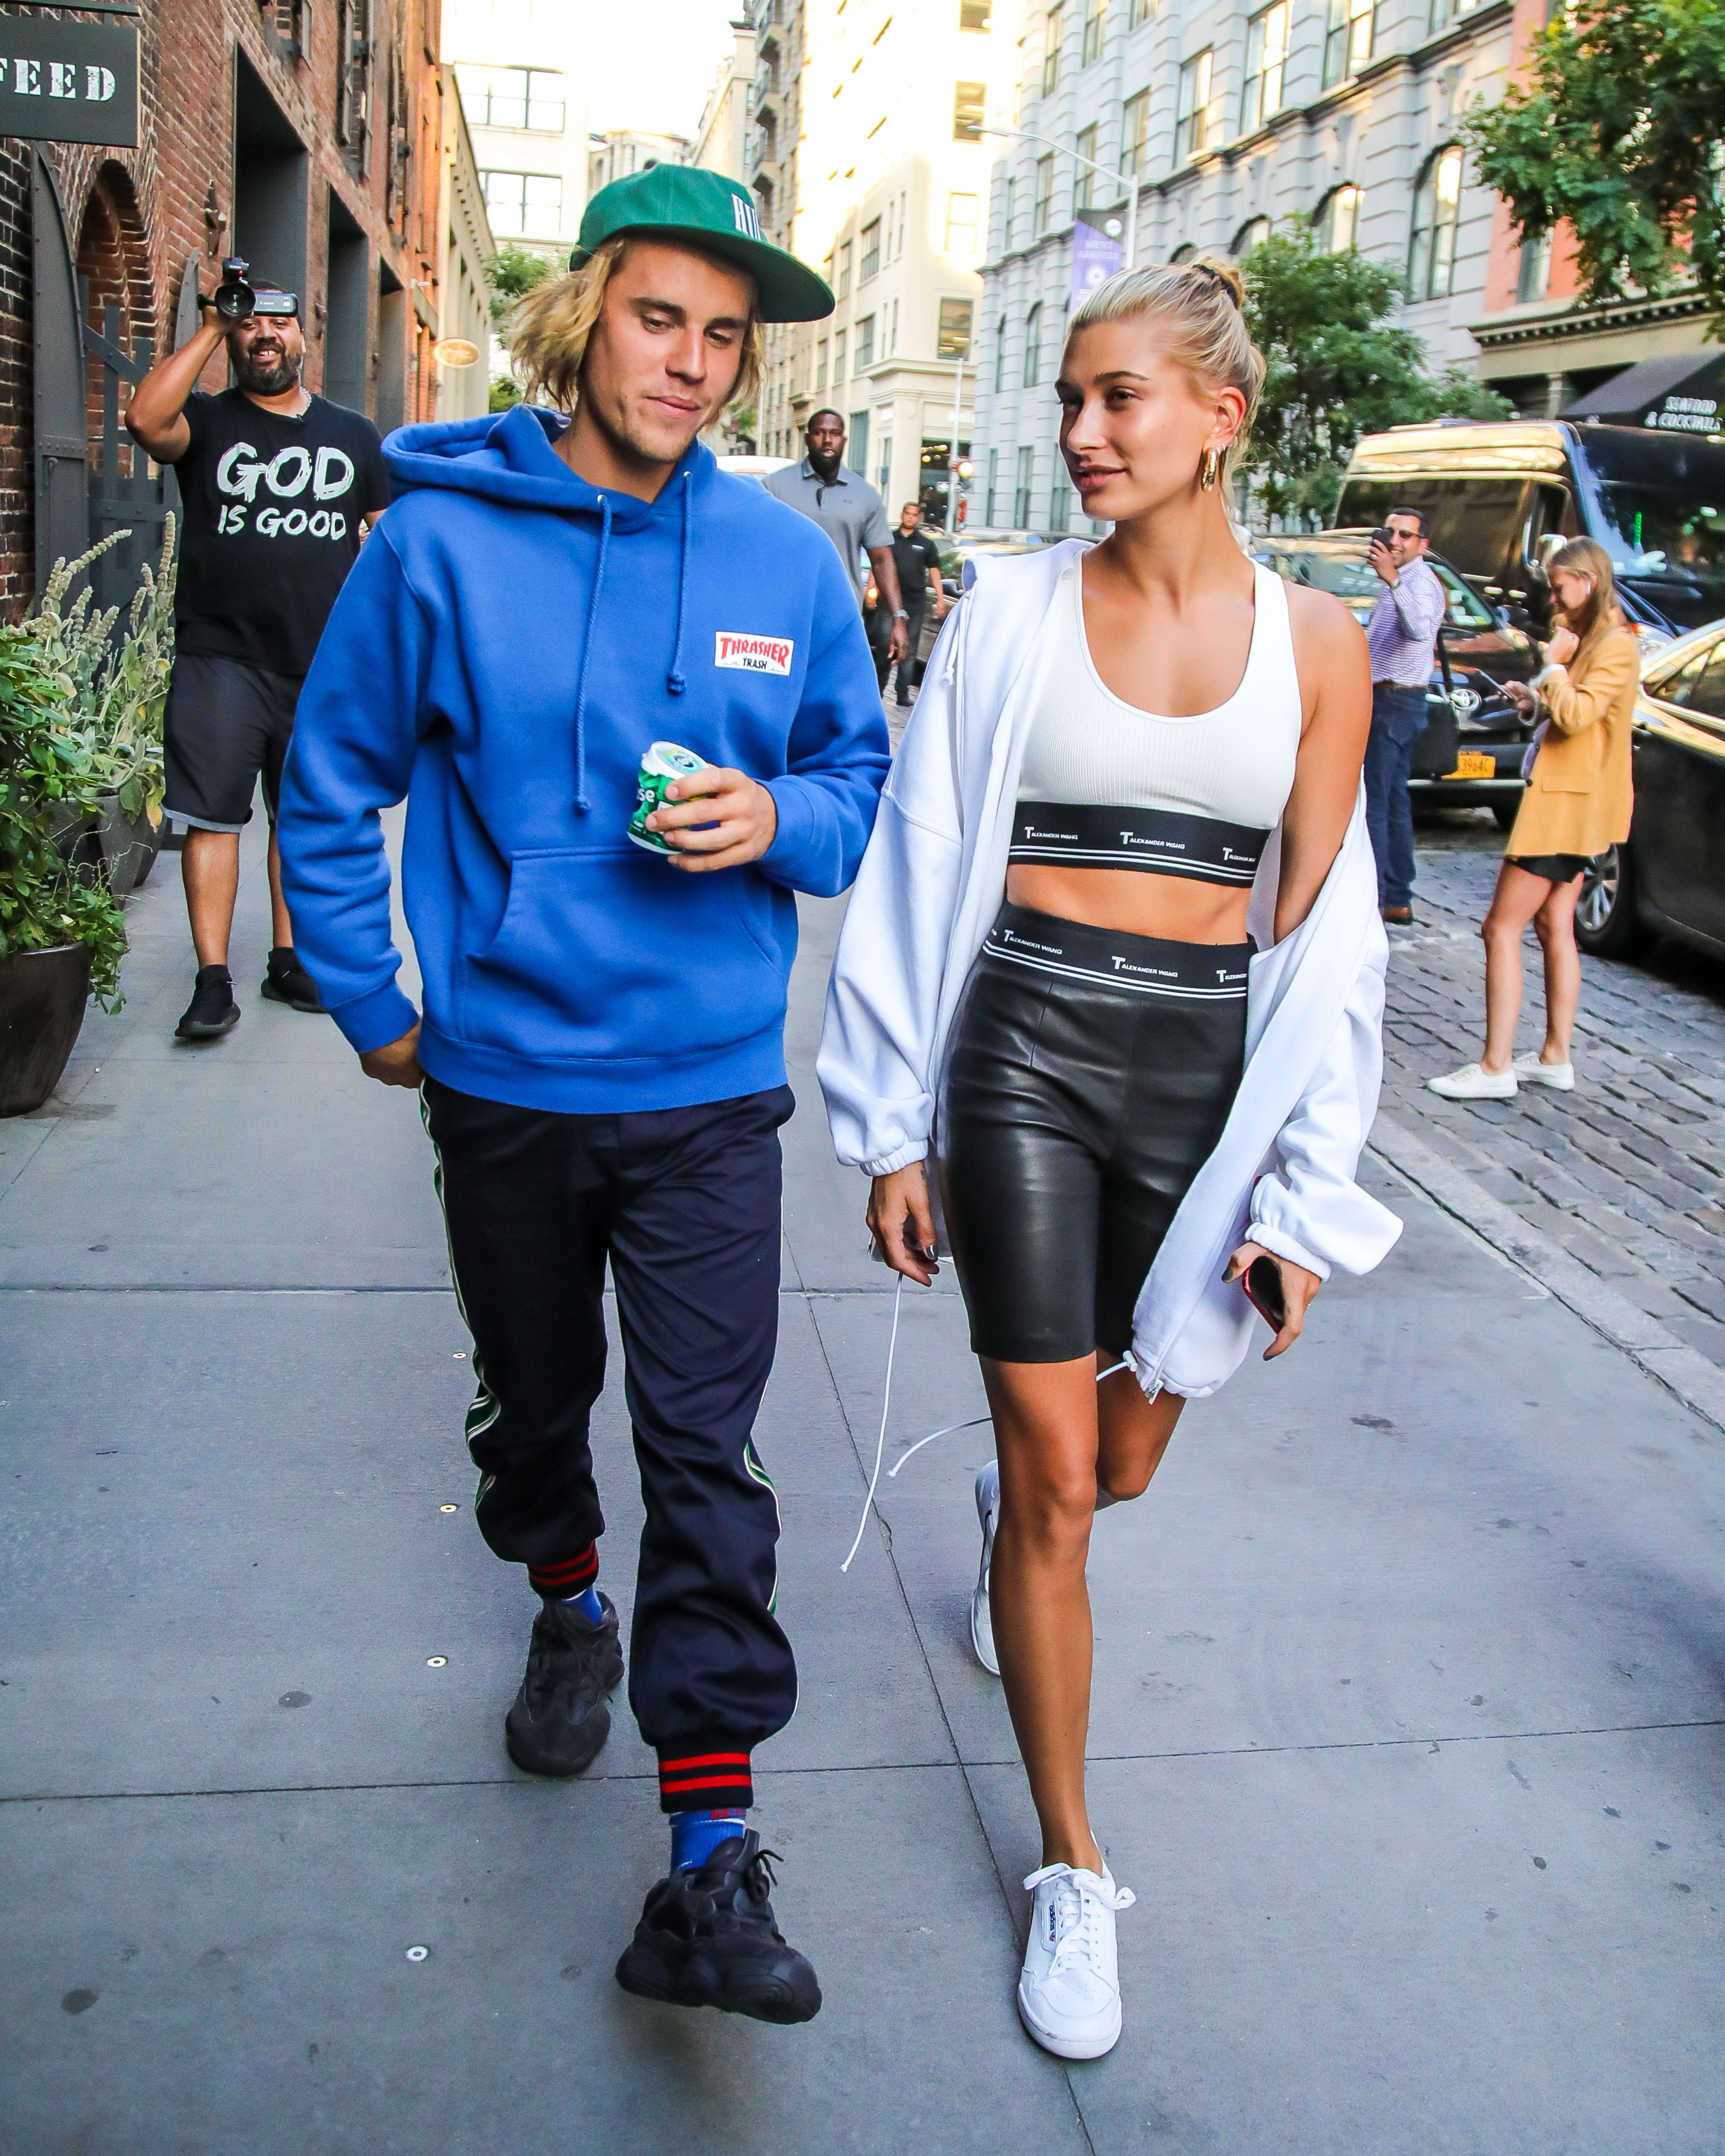 The Bieber Newlyweds Would Like You To Stop Spreading This Rumor About Them